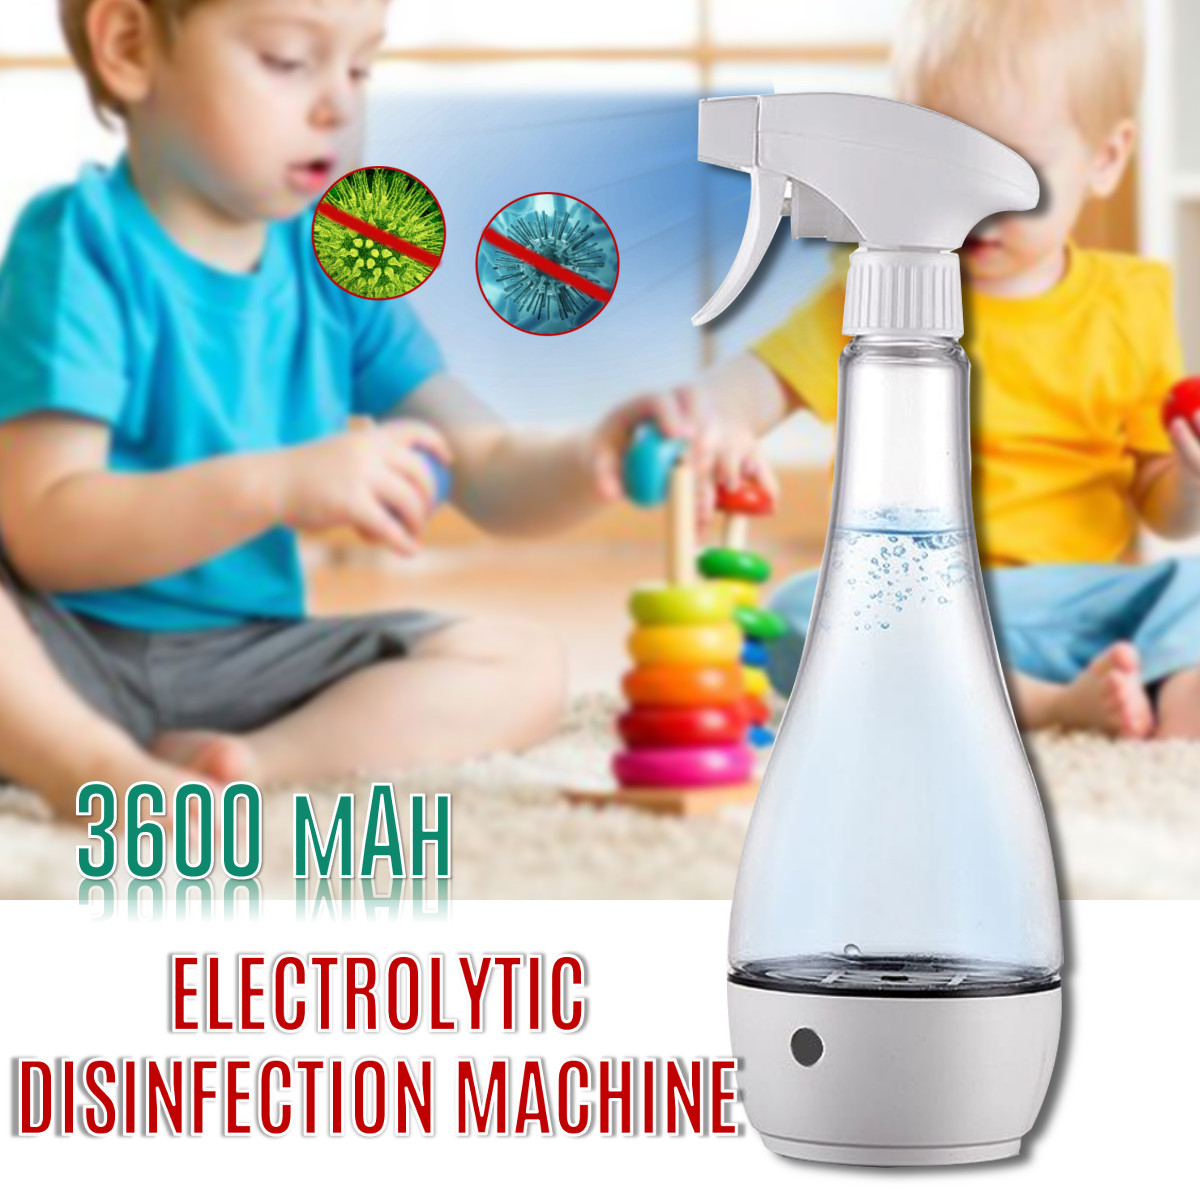 84 Disinfection Water Electrolytic Generator Sodium Hypochlorite Making Machine Protable Home Clean Sterilization Air Sprayer